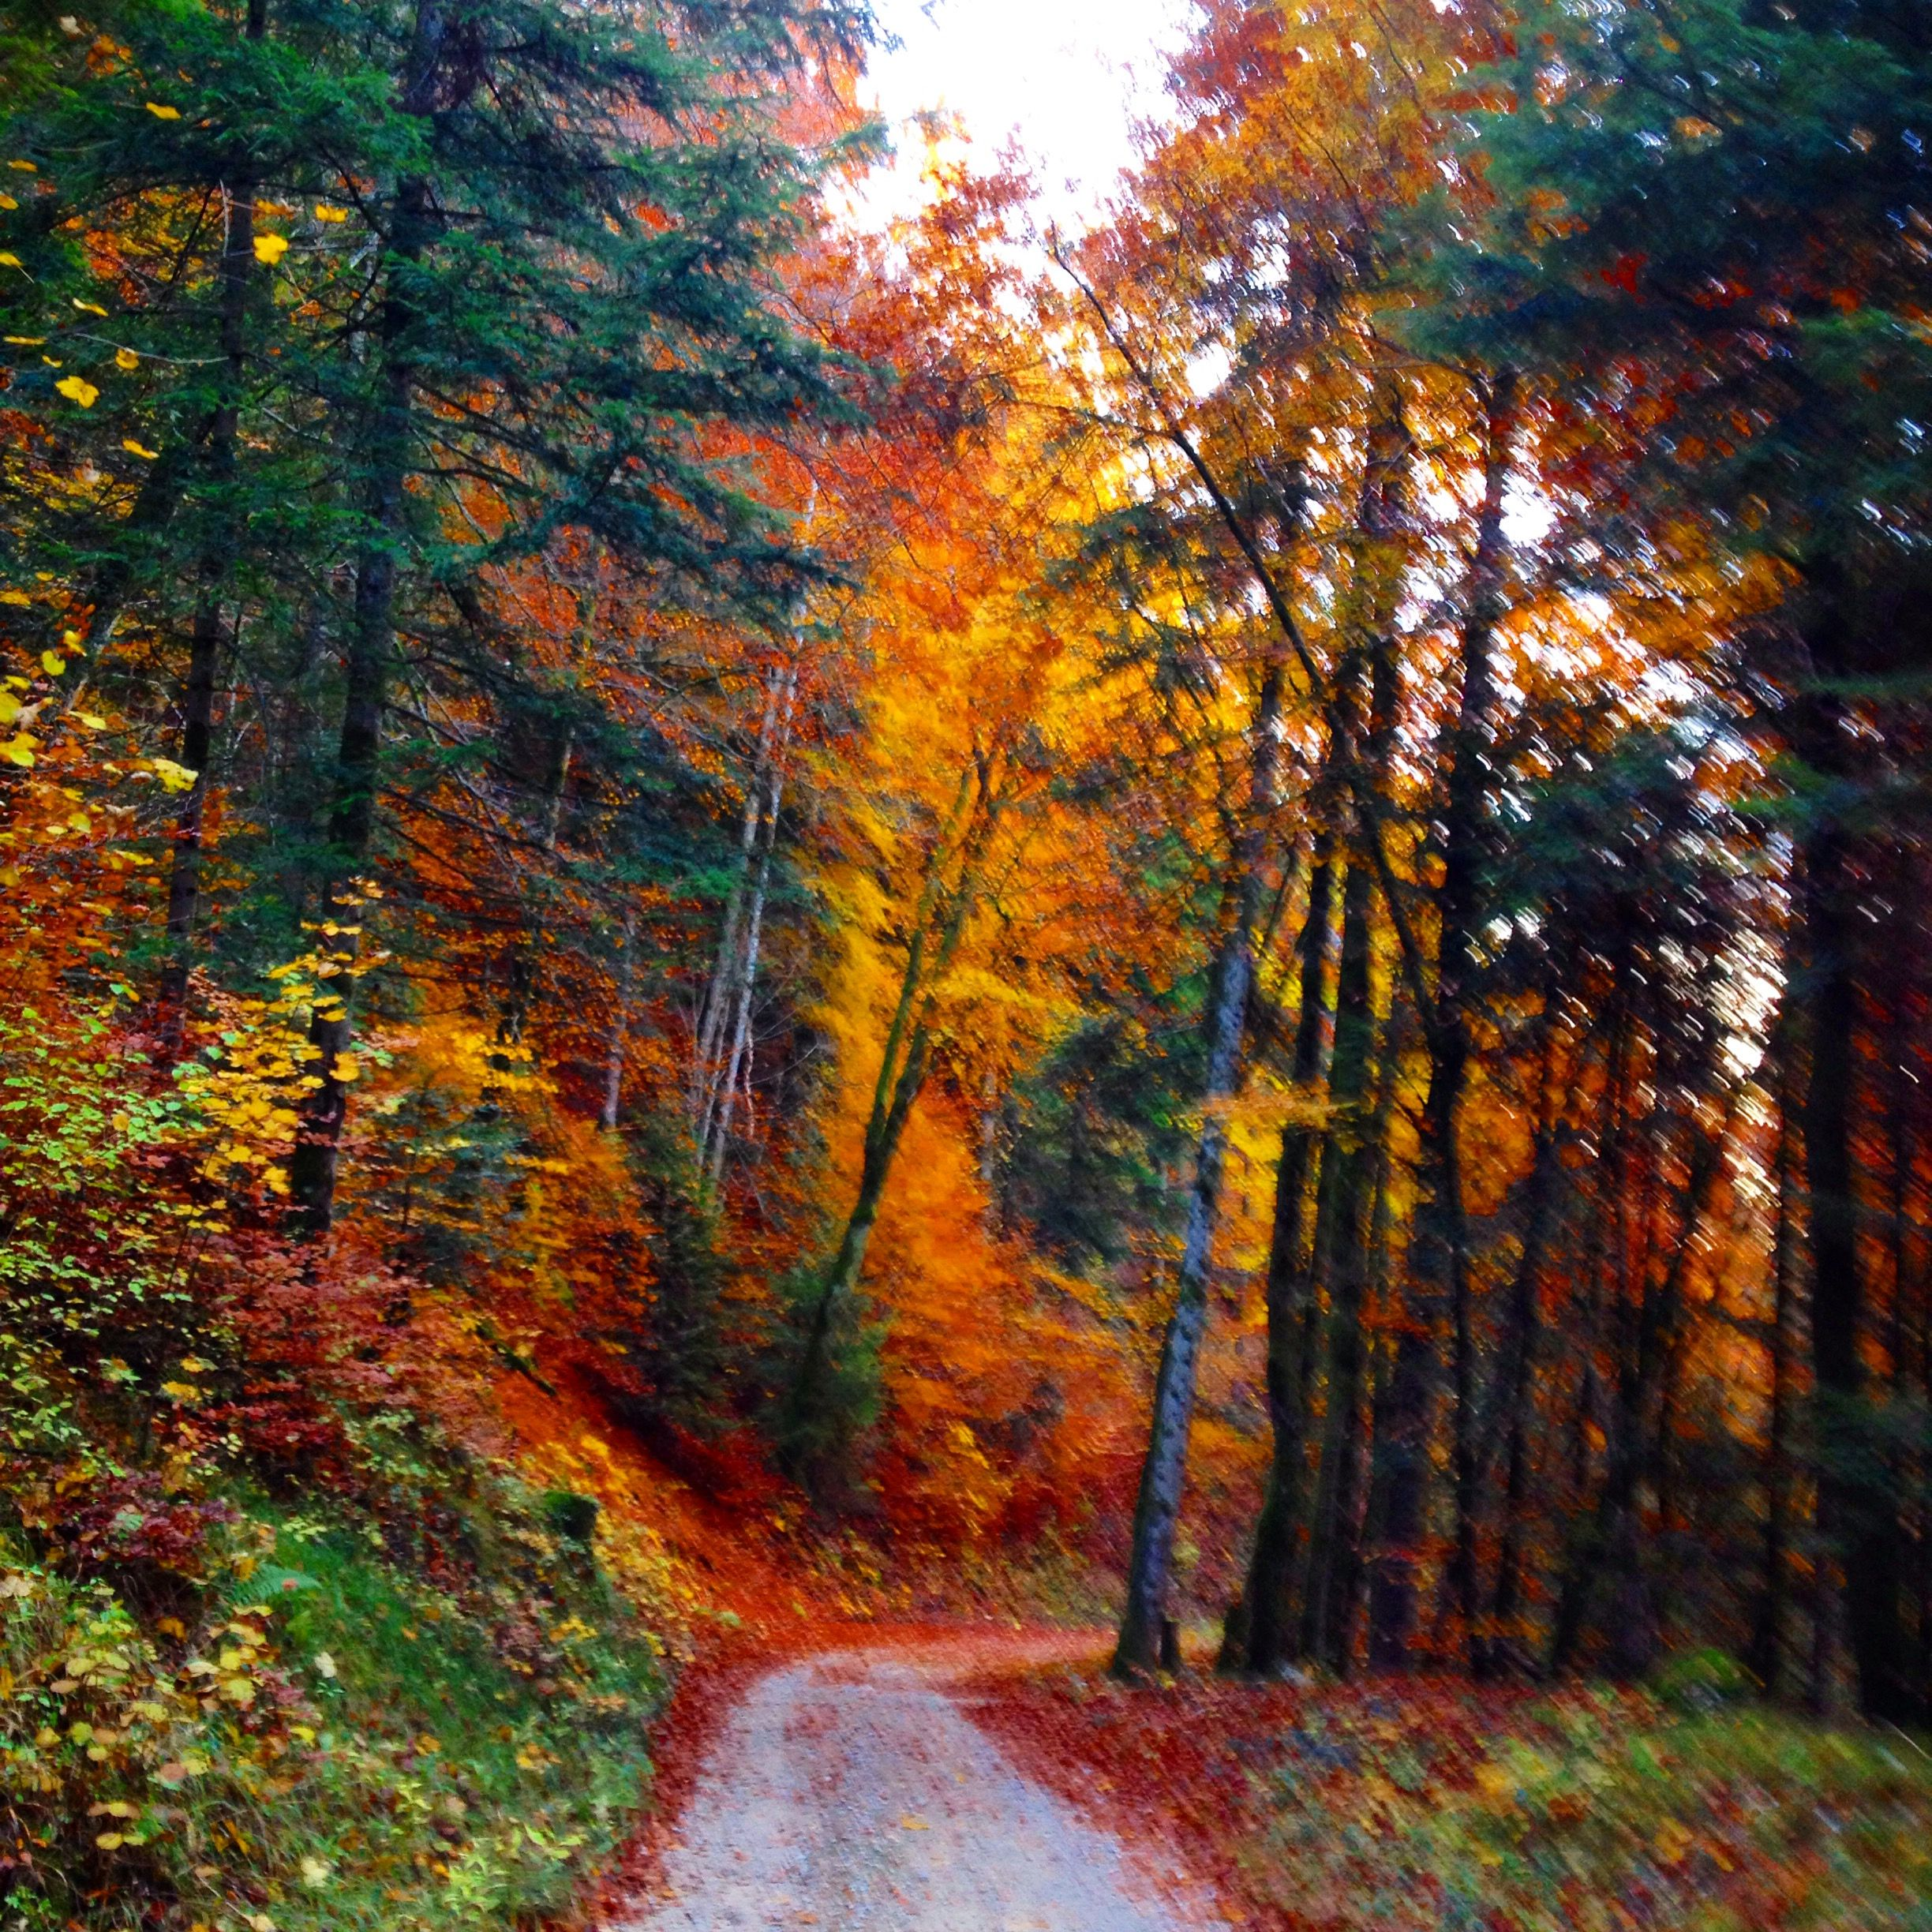 Automne Jura France Chemin Foret Franchecomte Couleurs Rouge Or Mystere Flou Idee Voyage Paysage Foret